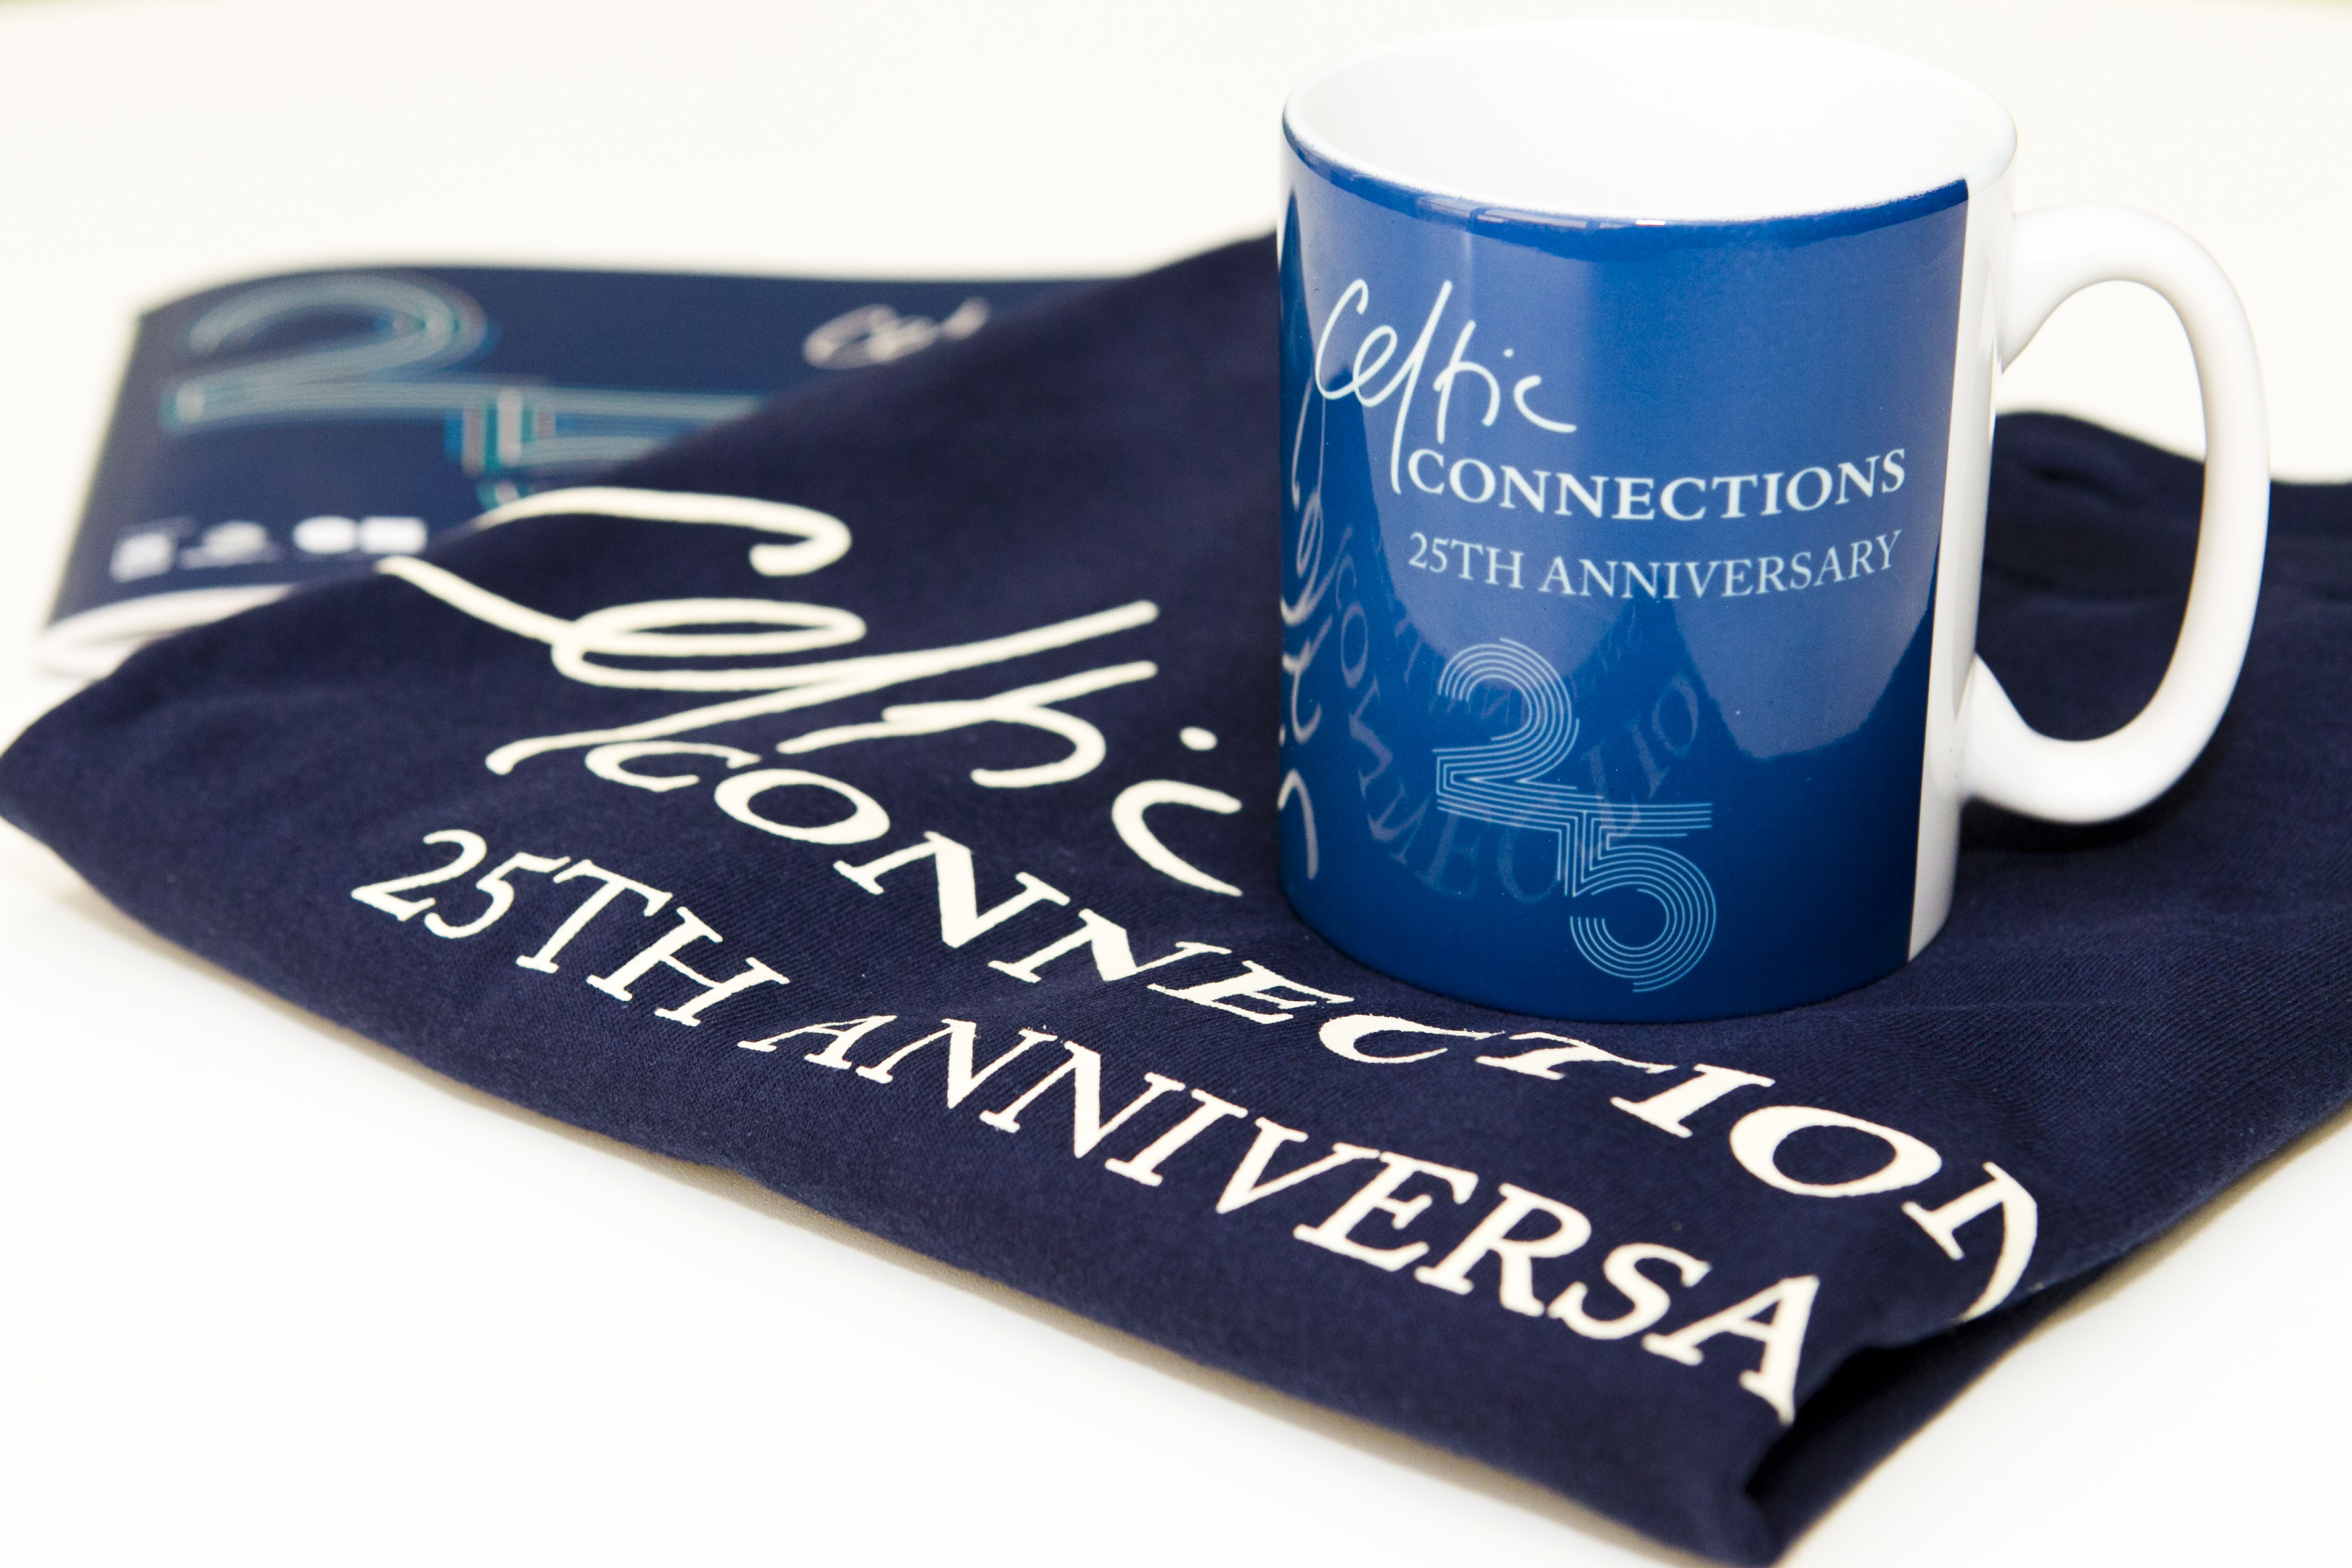 Celtic Connections music festival merchandise (Andrew Cawley / DC Thomson)